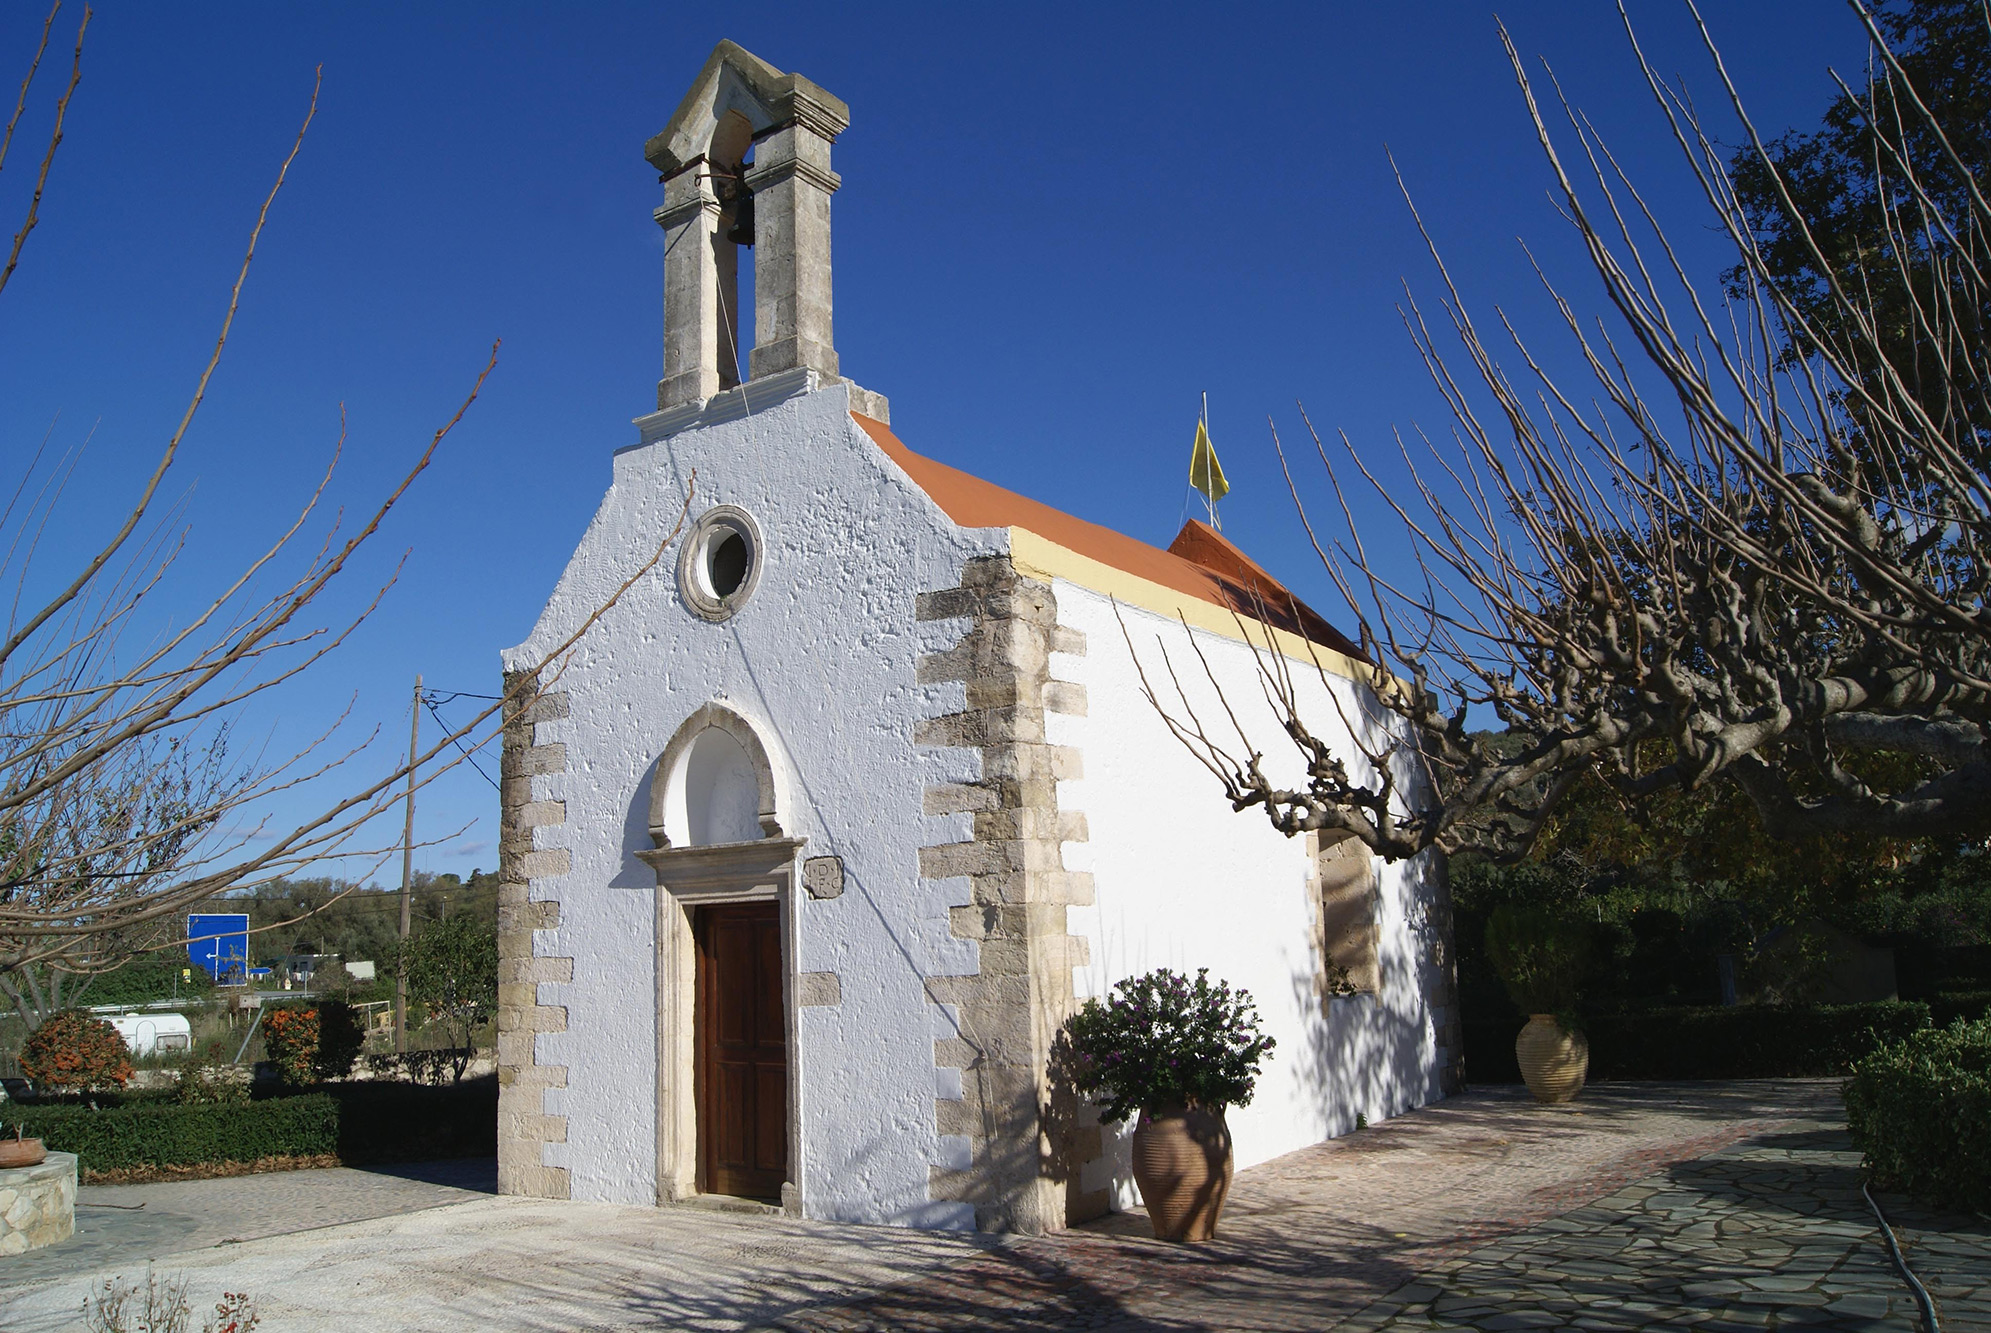 The Quiet Relative Unspoiled Village Of Kalyves Small Shelters Is 20 Km West Chania On North Coast Crete But South Side Souda Bay